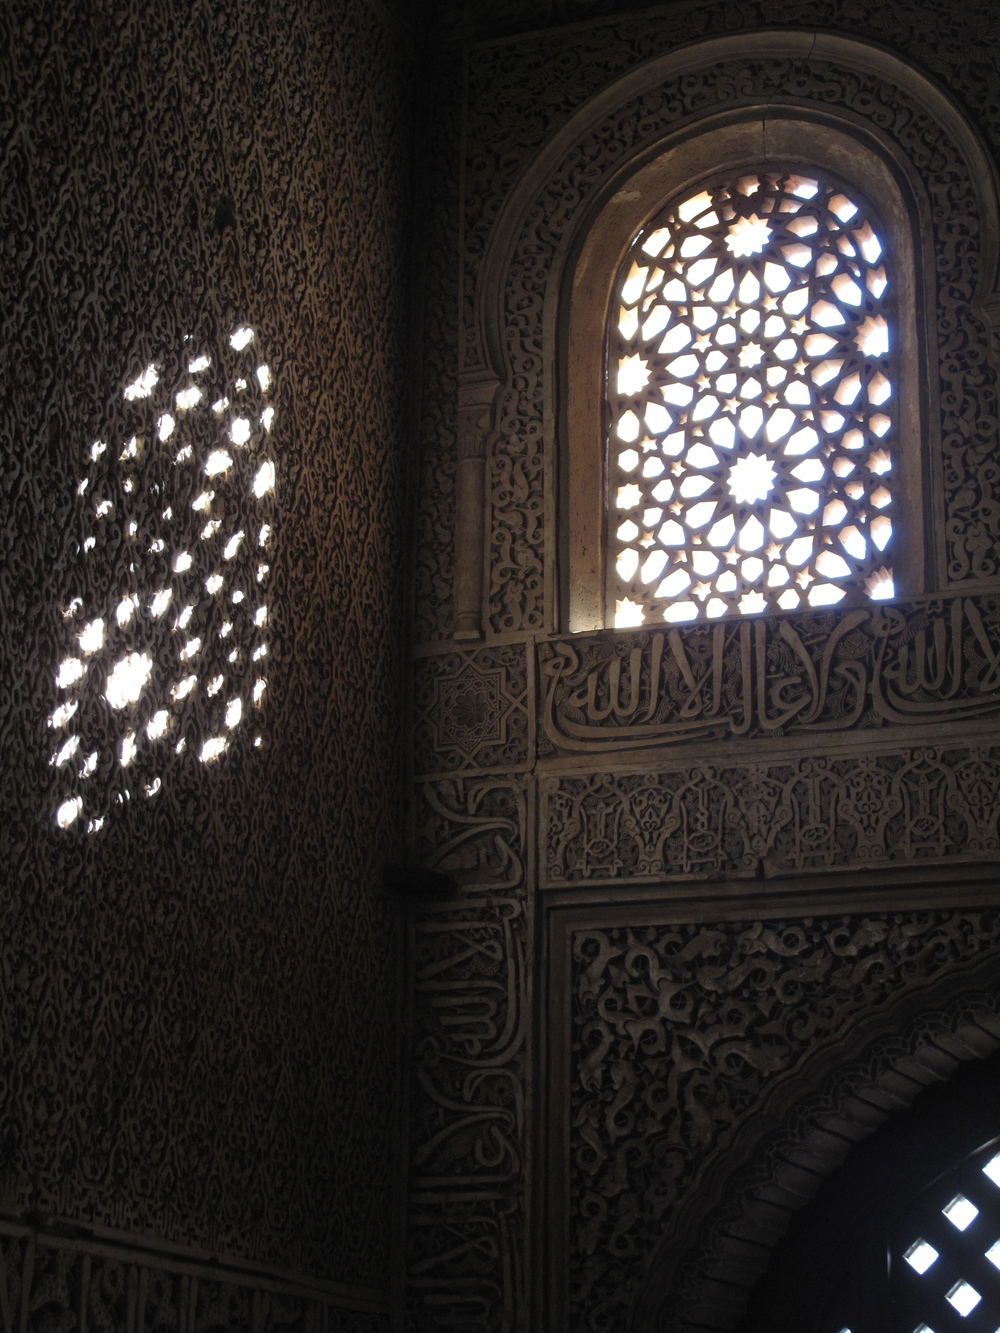 Windows with traceries at the Alhambra, shadows and light in patterns on the wall